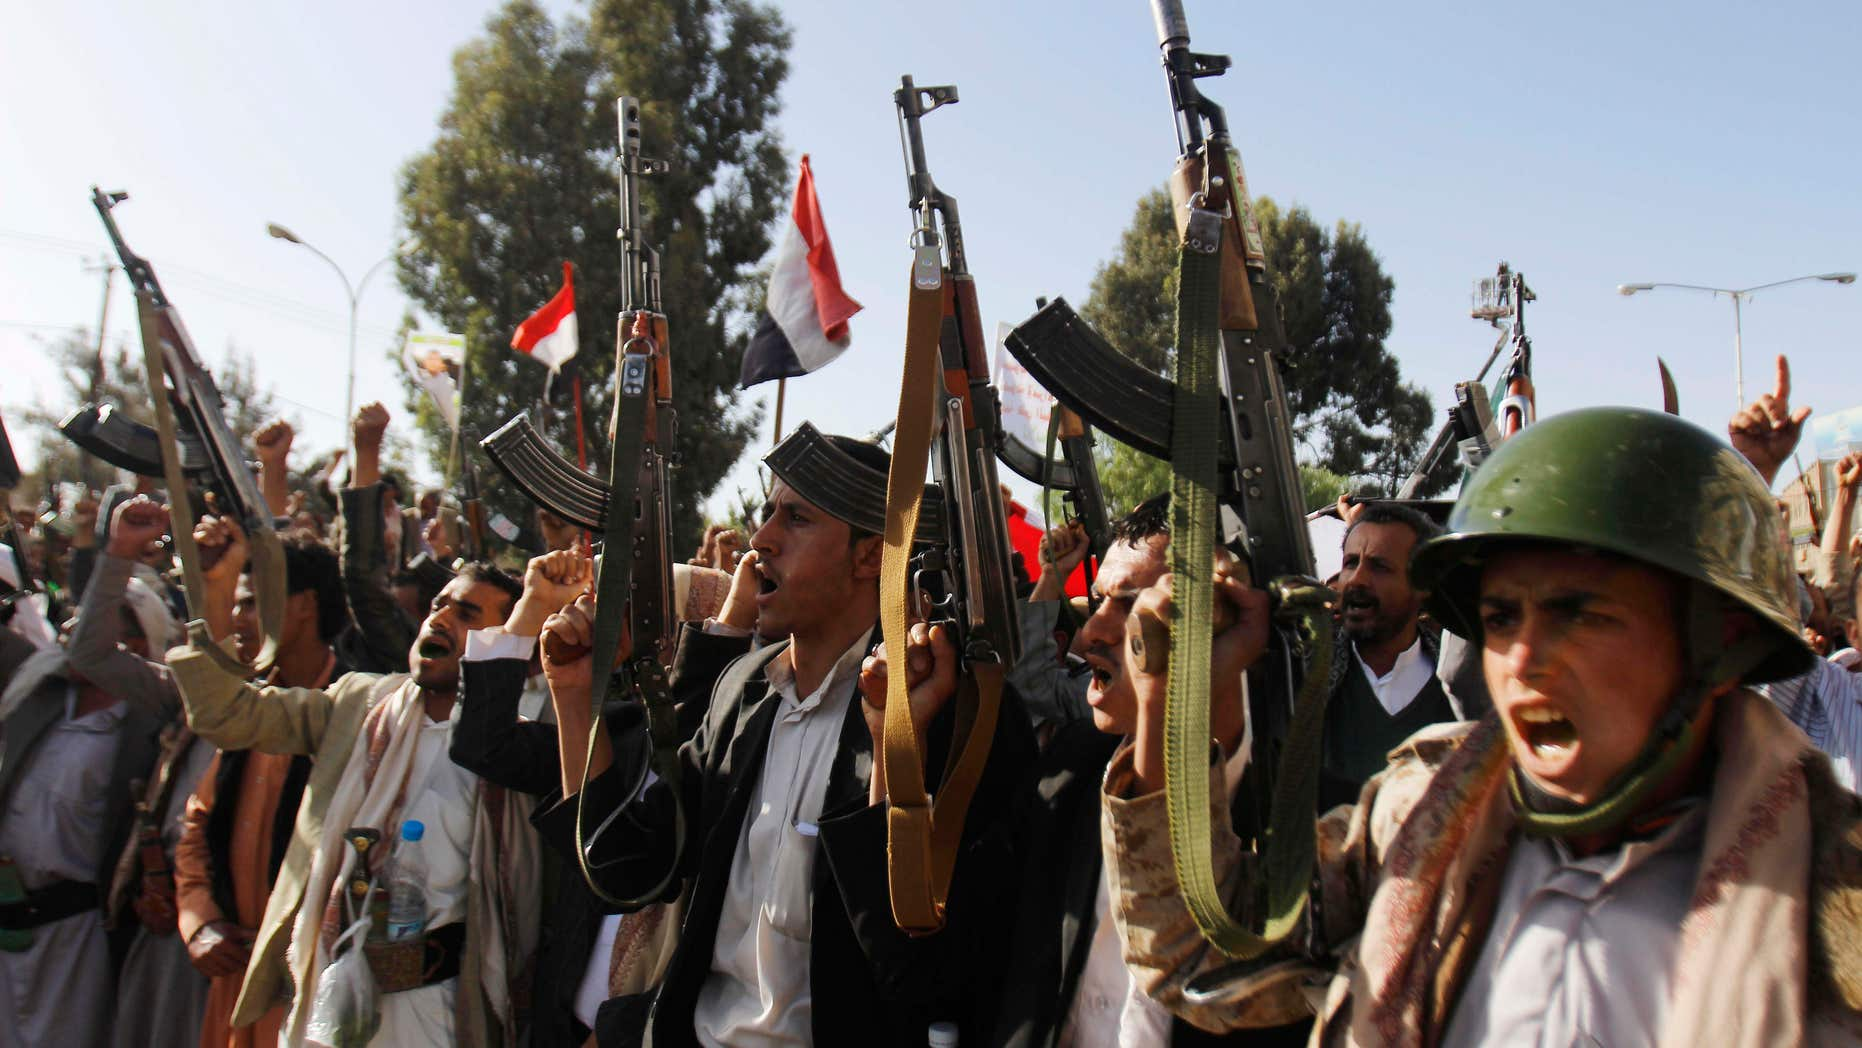 April 16, 2015: Shiite rebels, known as Houthis, chant slogans during a demonstration against an arms embargo imposed by the U.N. Security Council on Houthi leaders, in Sanaa, Yemen.